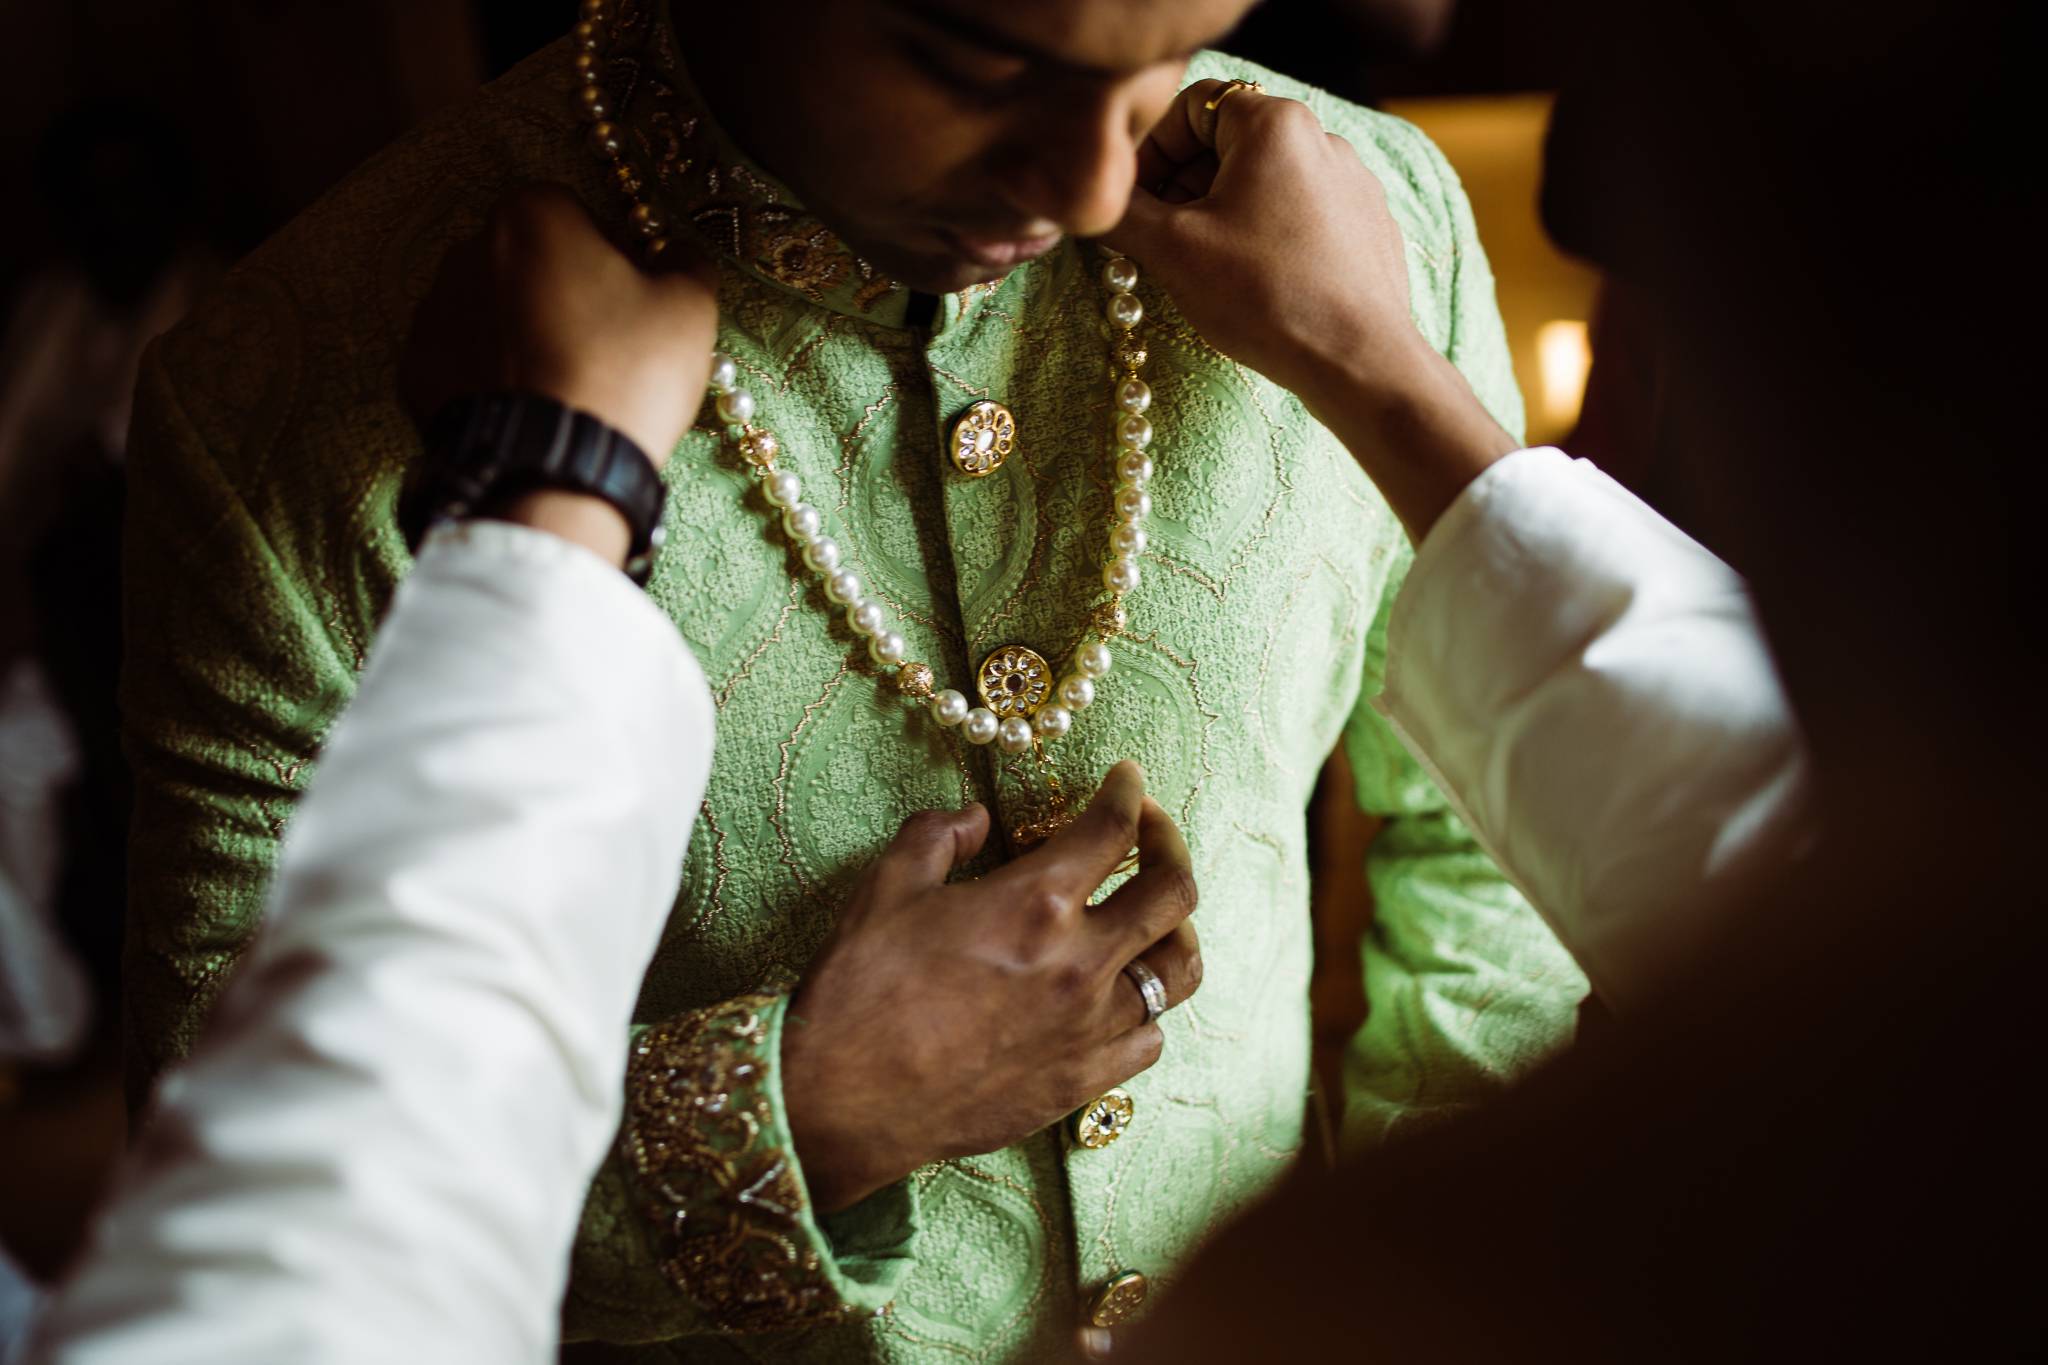 Keerthi and Kishore - Indian Wedding - elizalde photography - Dallas Photographer - South Asian Wedding Photographer - The SPRINGS Event Venue (34 of 226).jpg